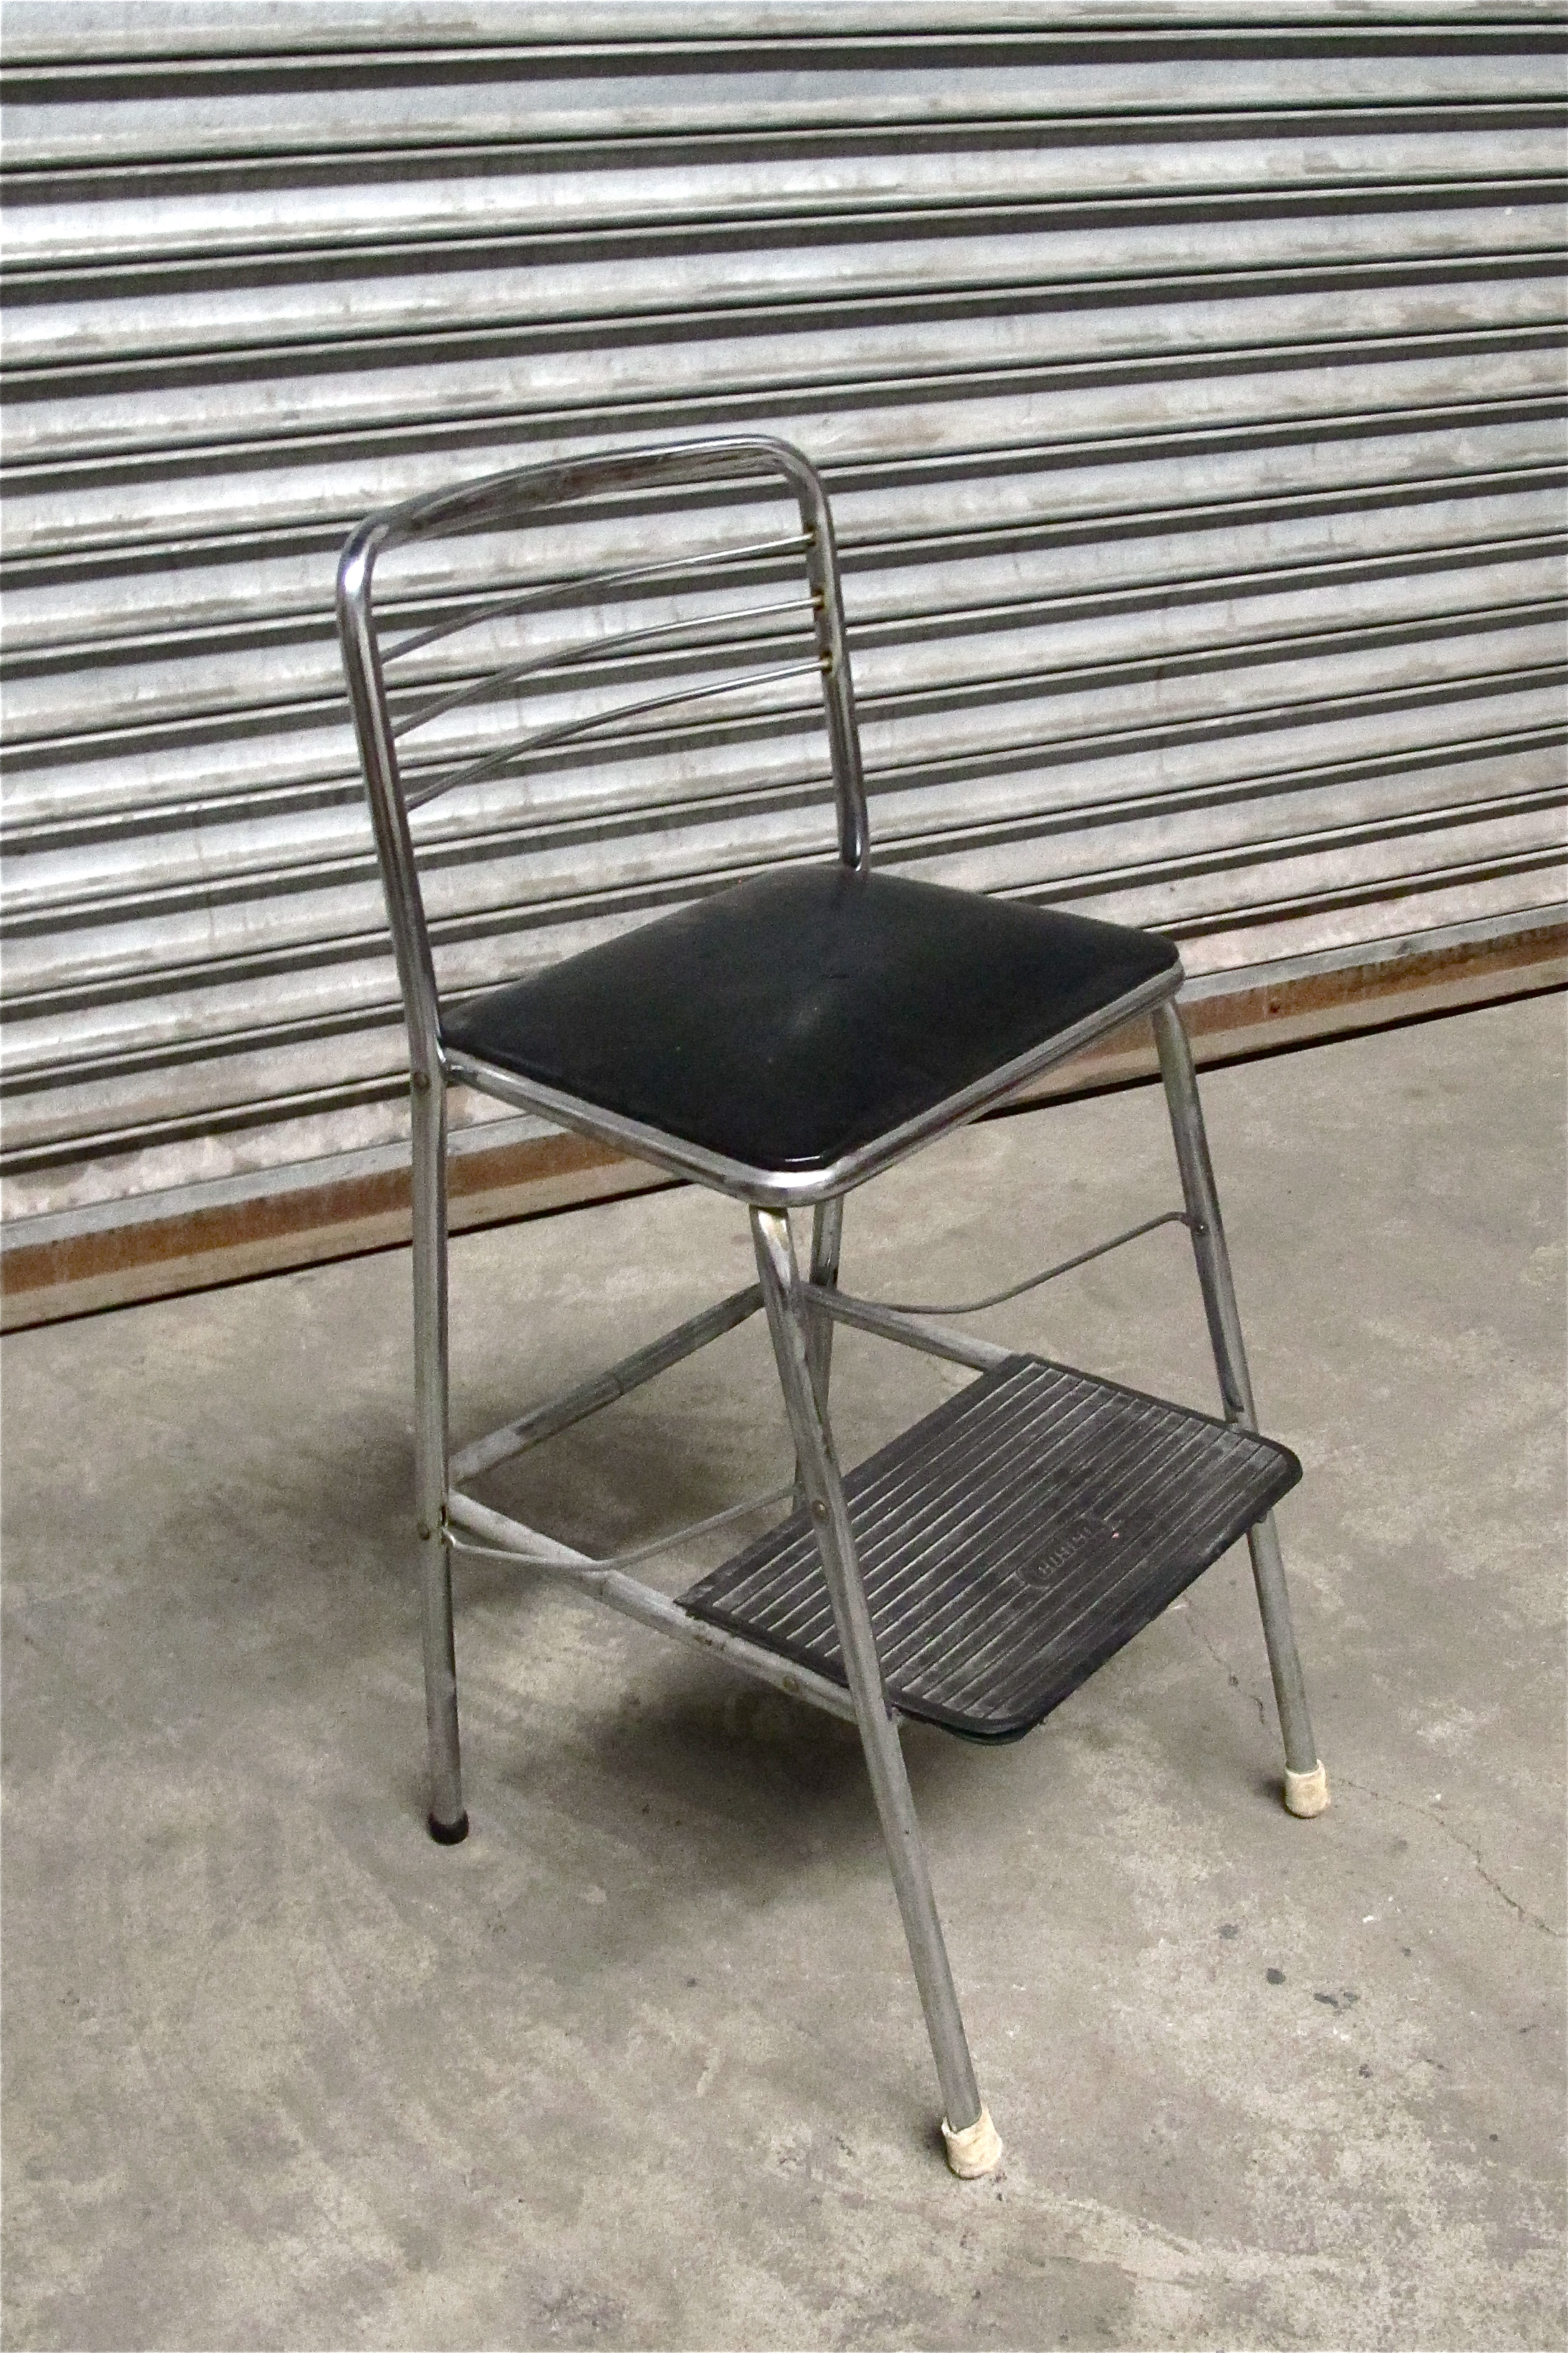 Silver and Black 2-step Kitchen Chair $40